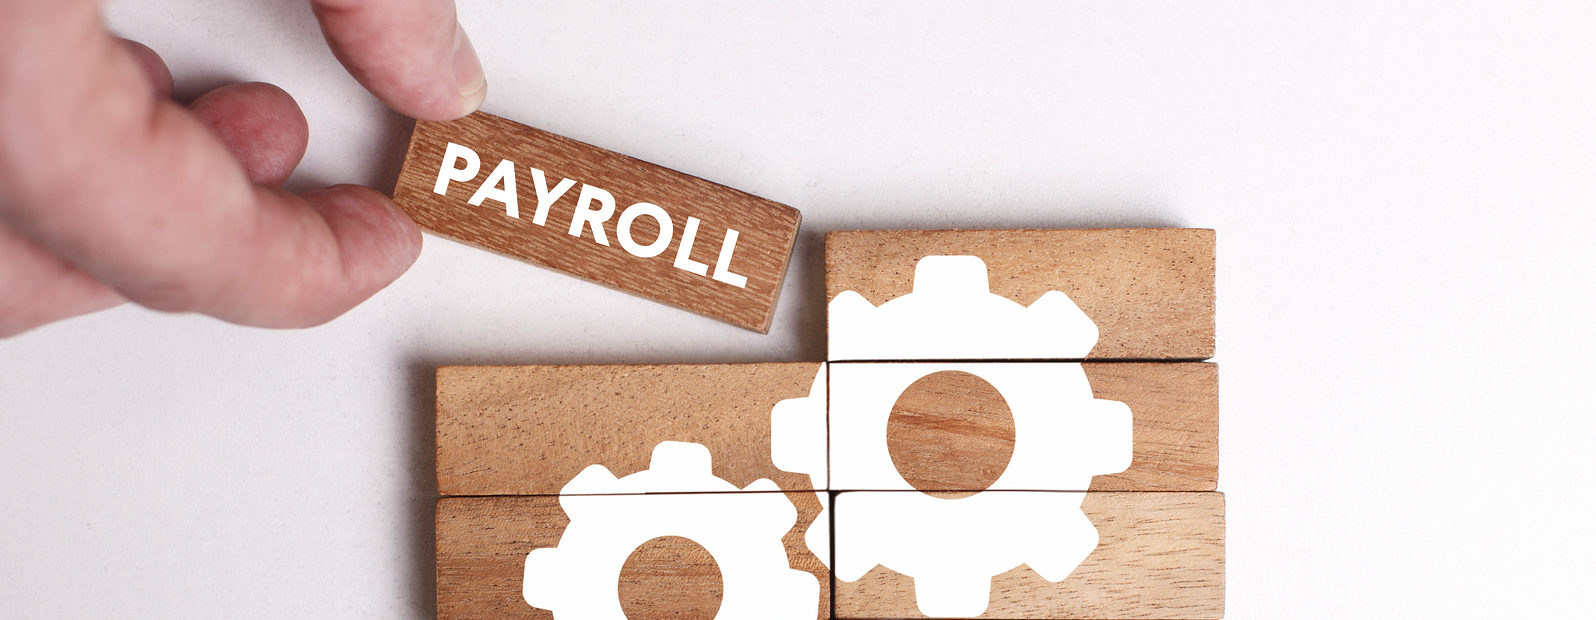 The Benefits of Payroll Outsourcing Explained